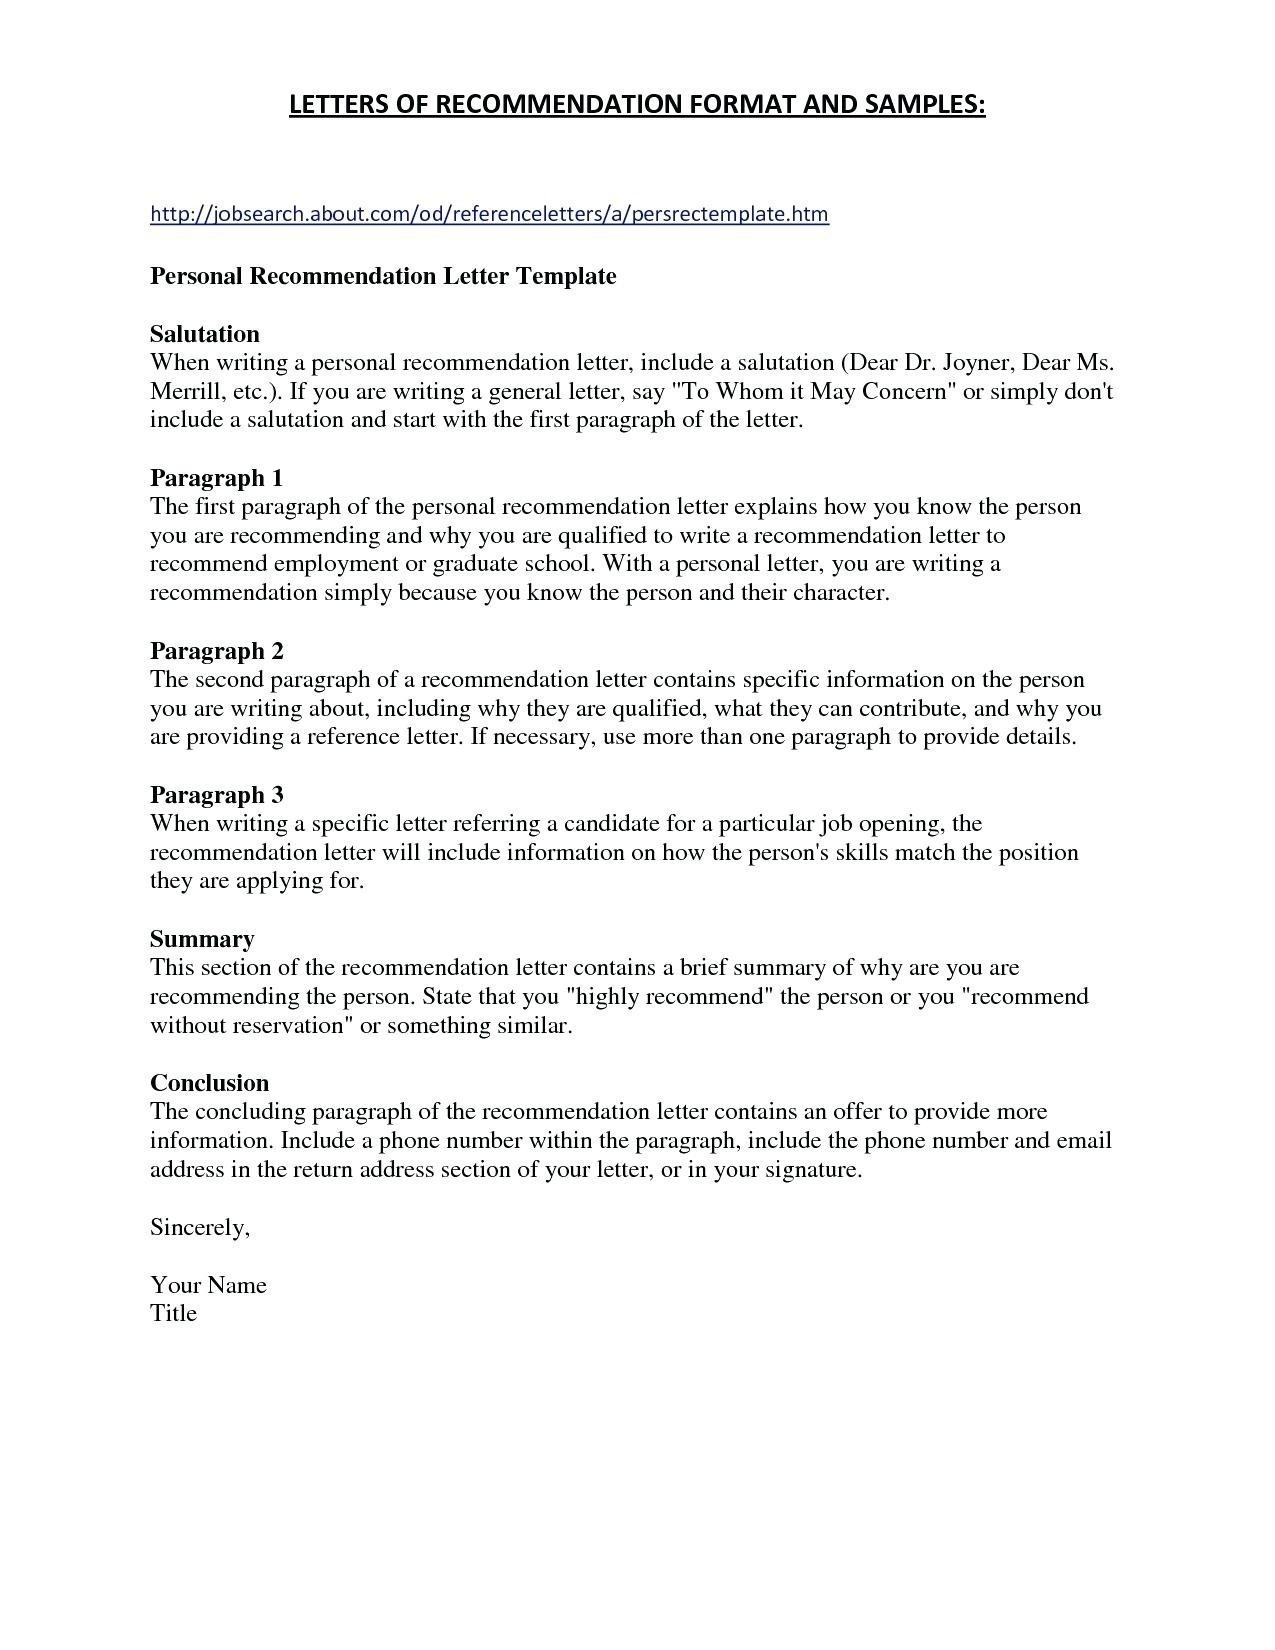 Teacher Reference Letter Template - Letter Re Mendation From Teacher for Job Save Valid Job